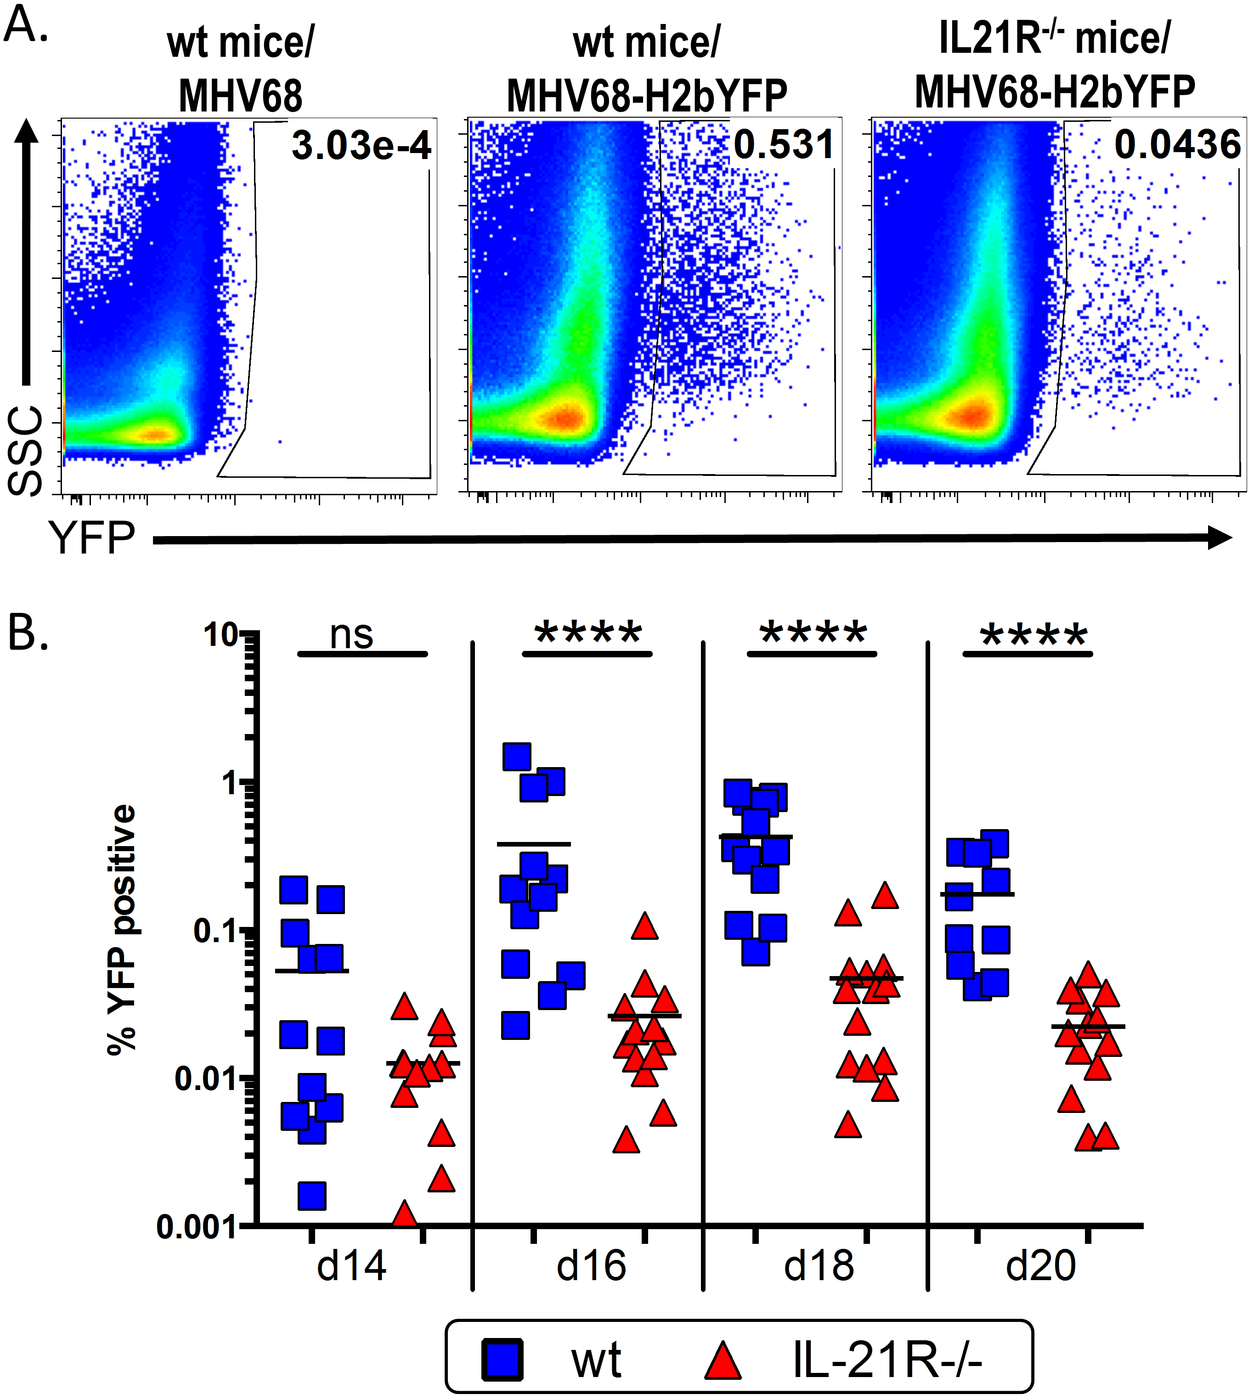 IL-21 signaling is required for efficient establishment of MHV68 latency.